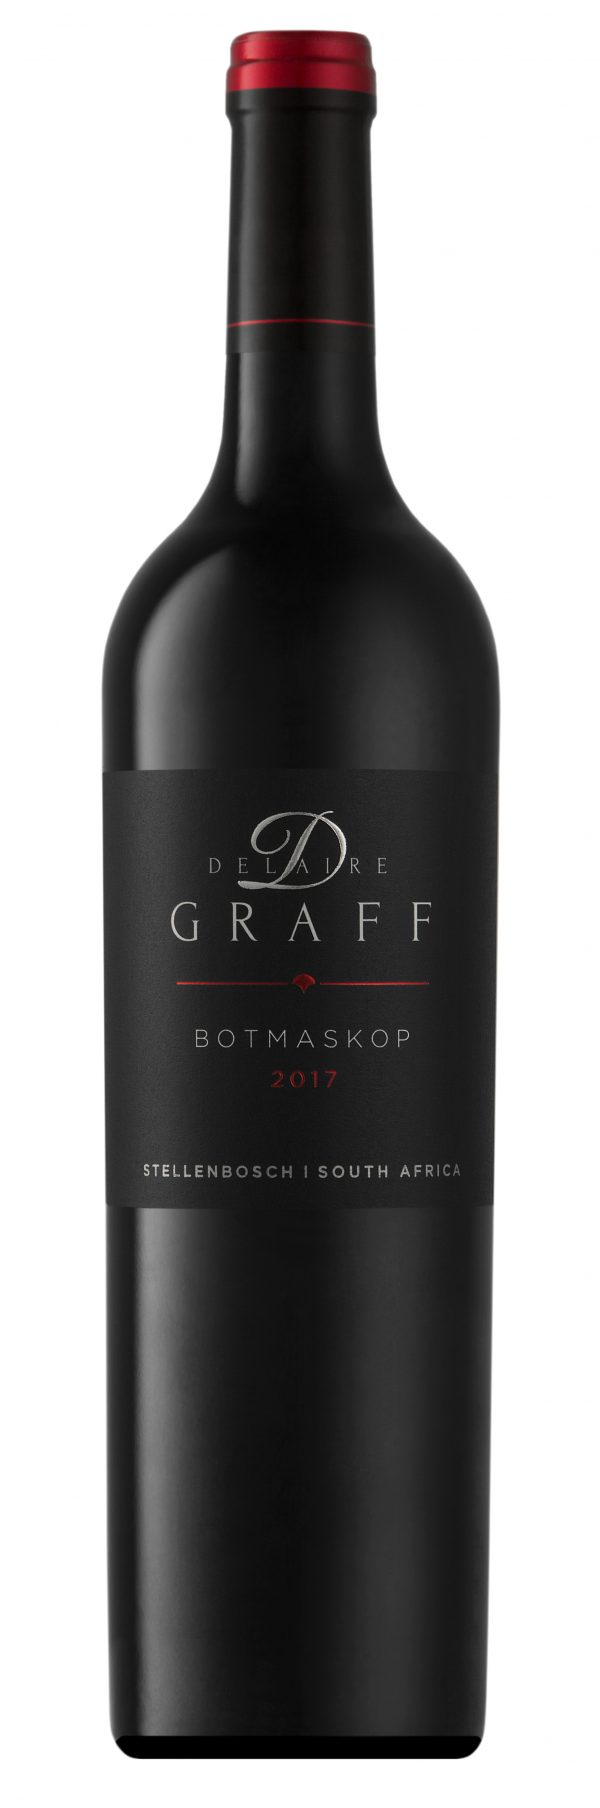 A bottle of Delaire Graff Botmaskop wine